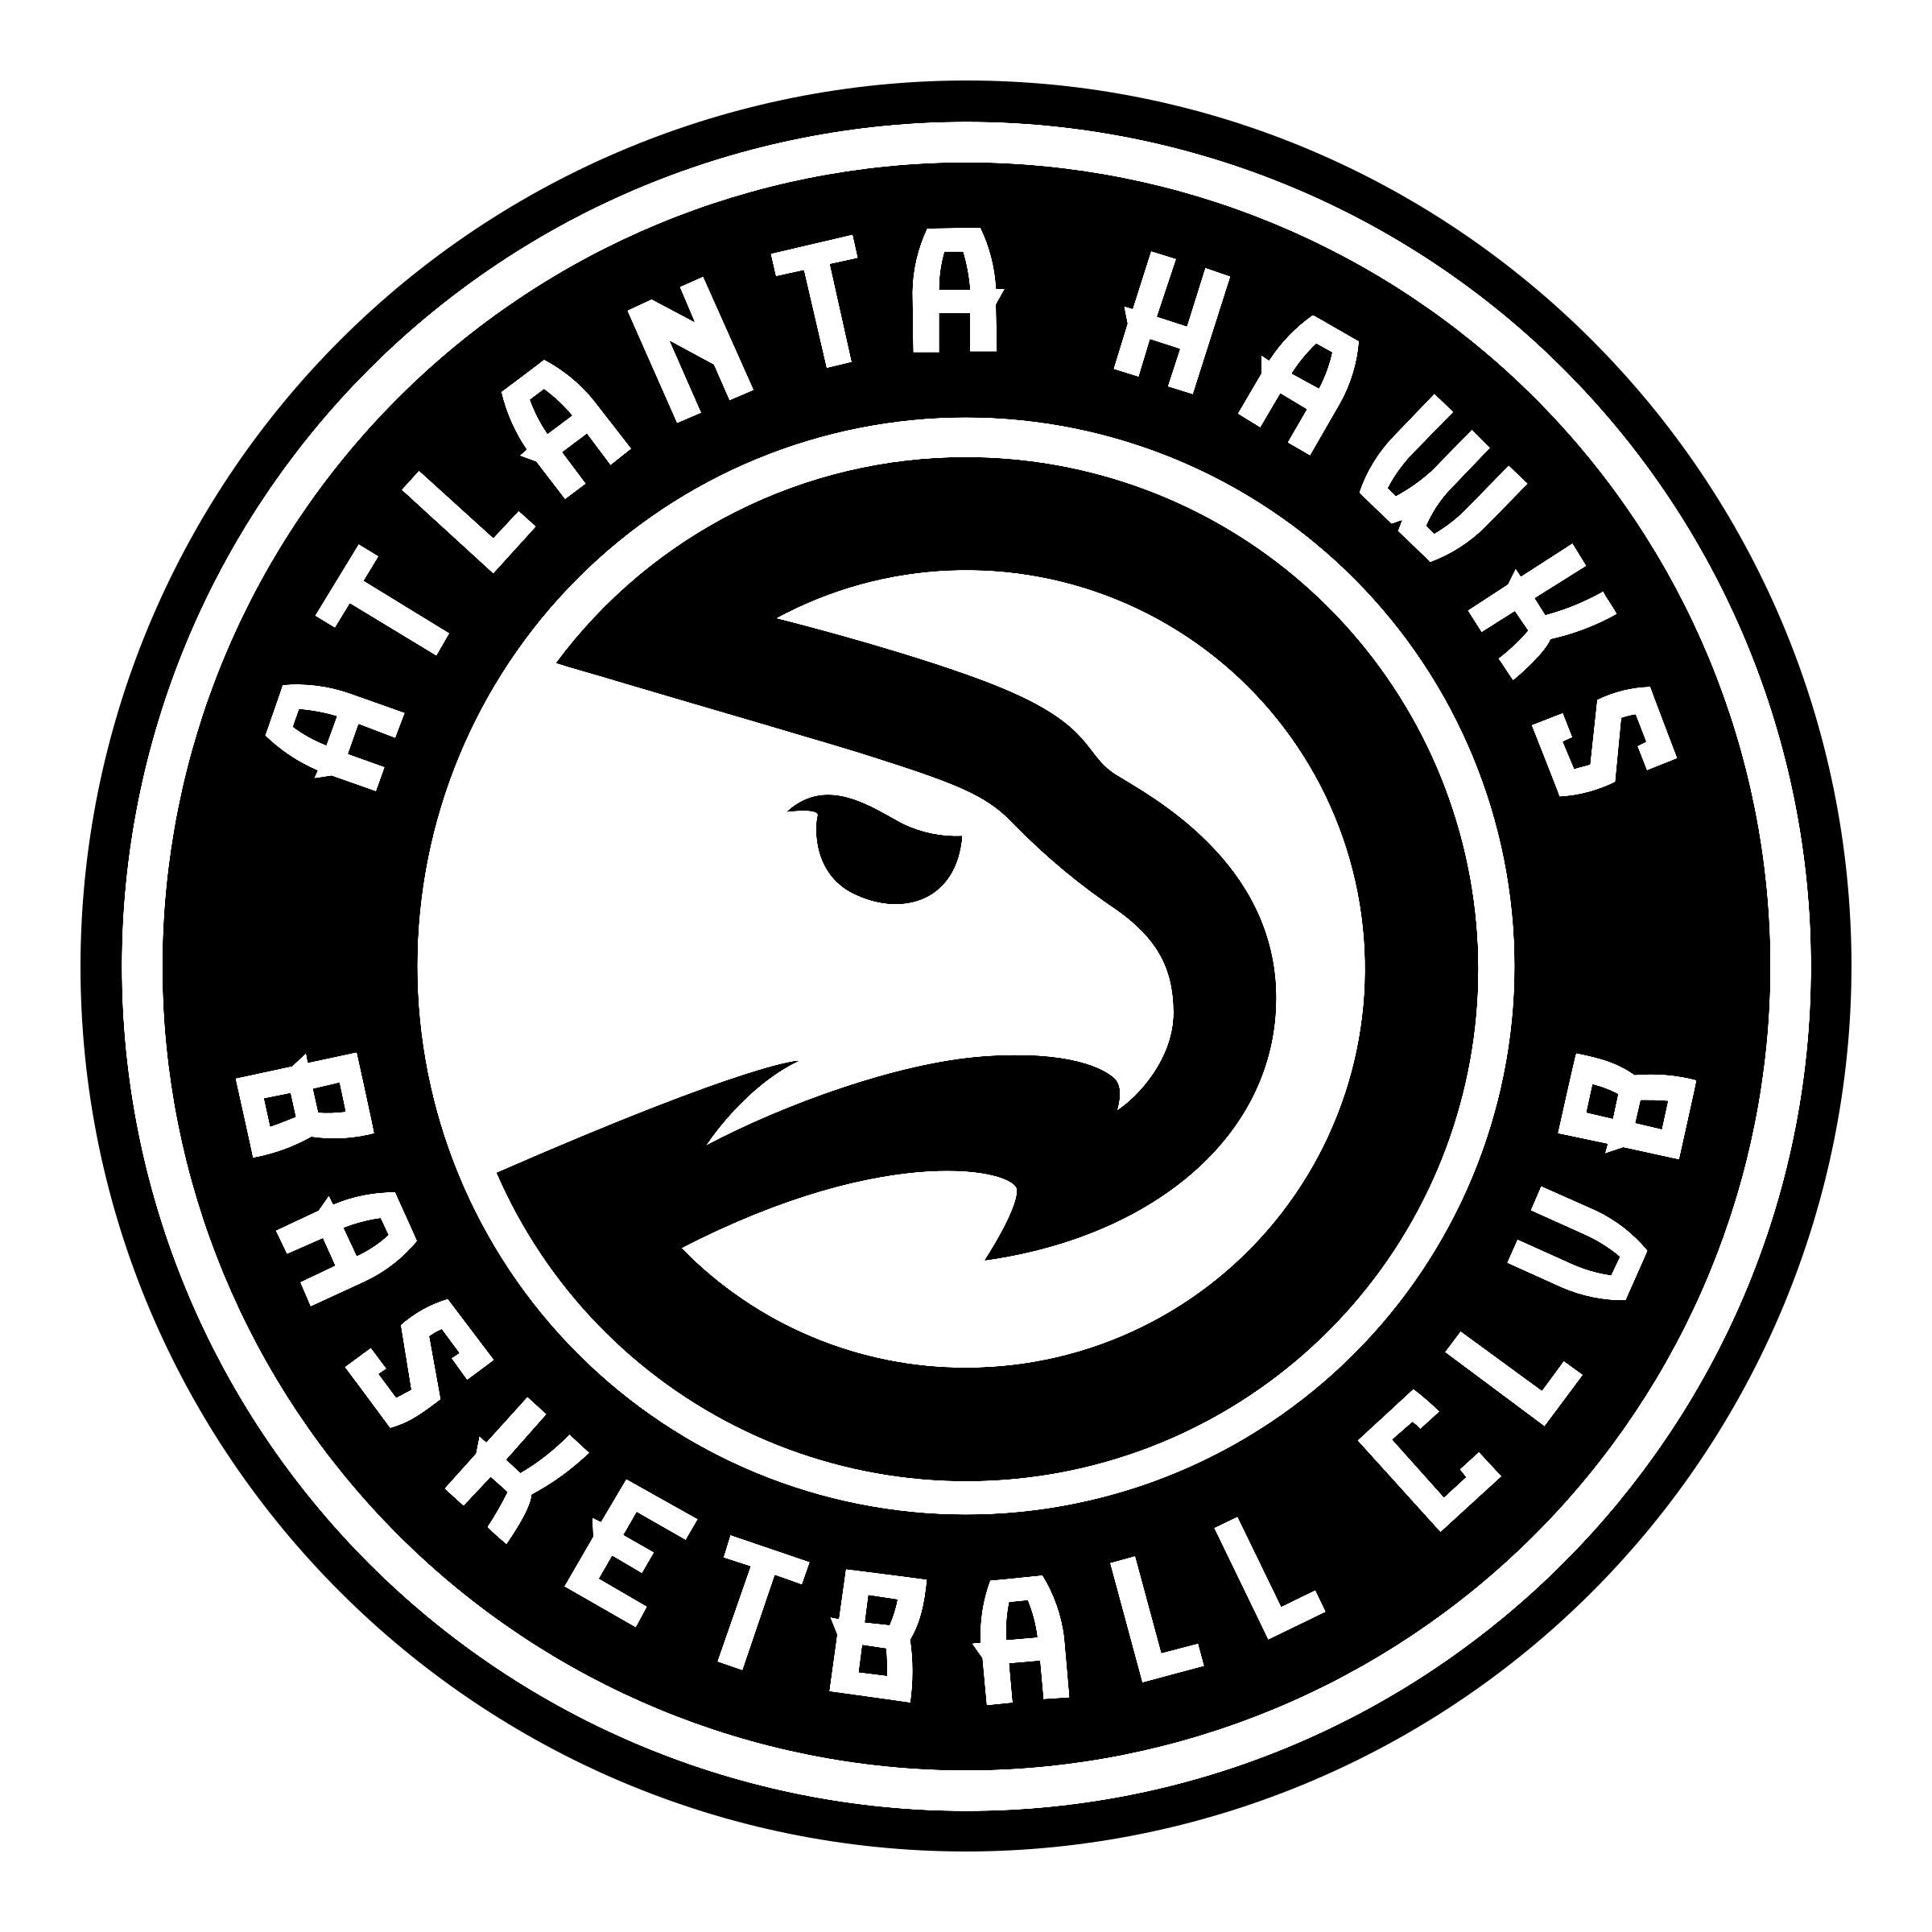 Atlanta Hawks Logo - Atlanta Hawks Logo PNG Transparent & SVG Vector - Freebie Supply